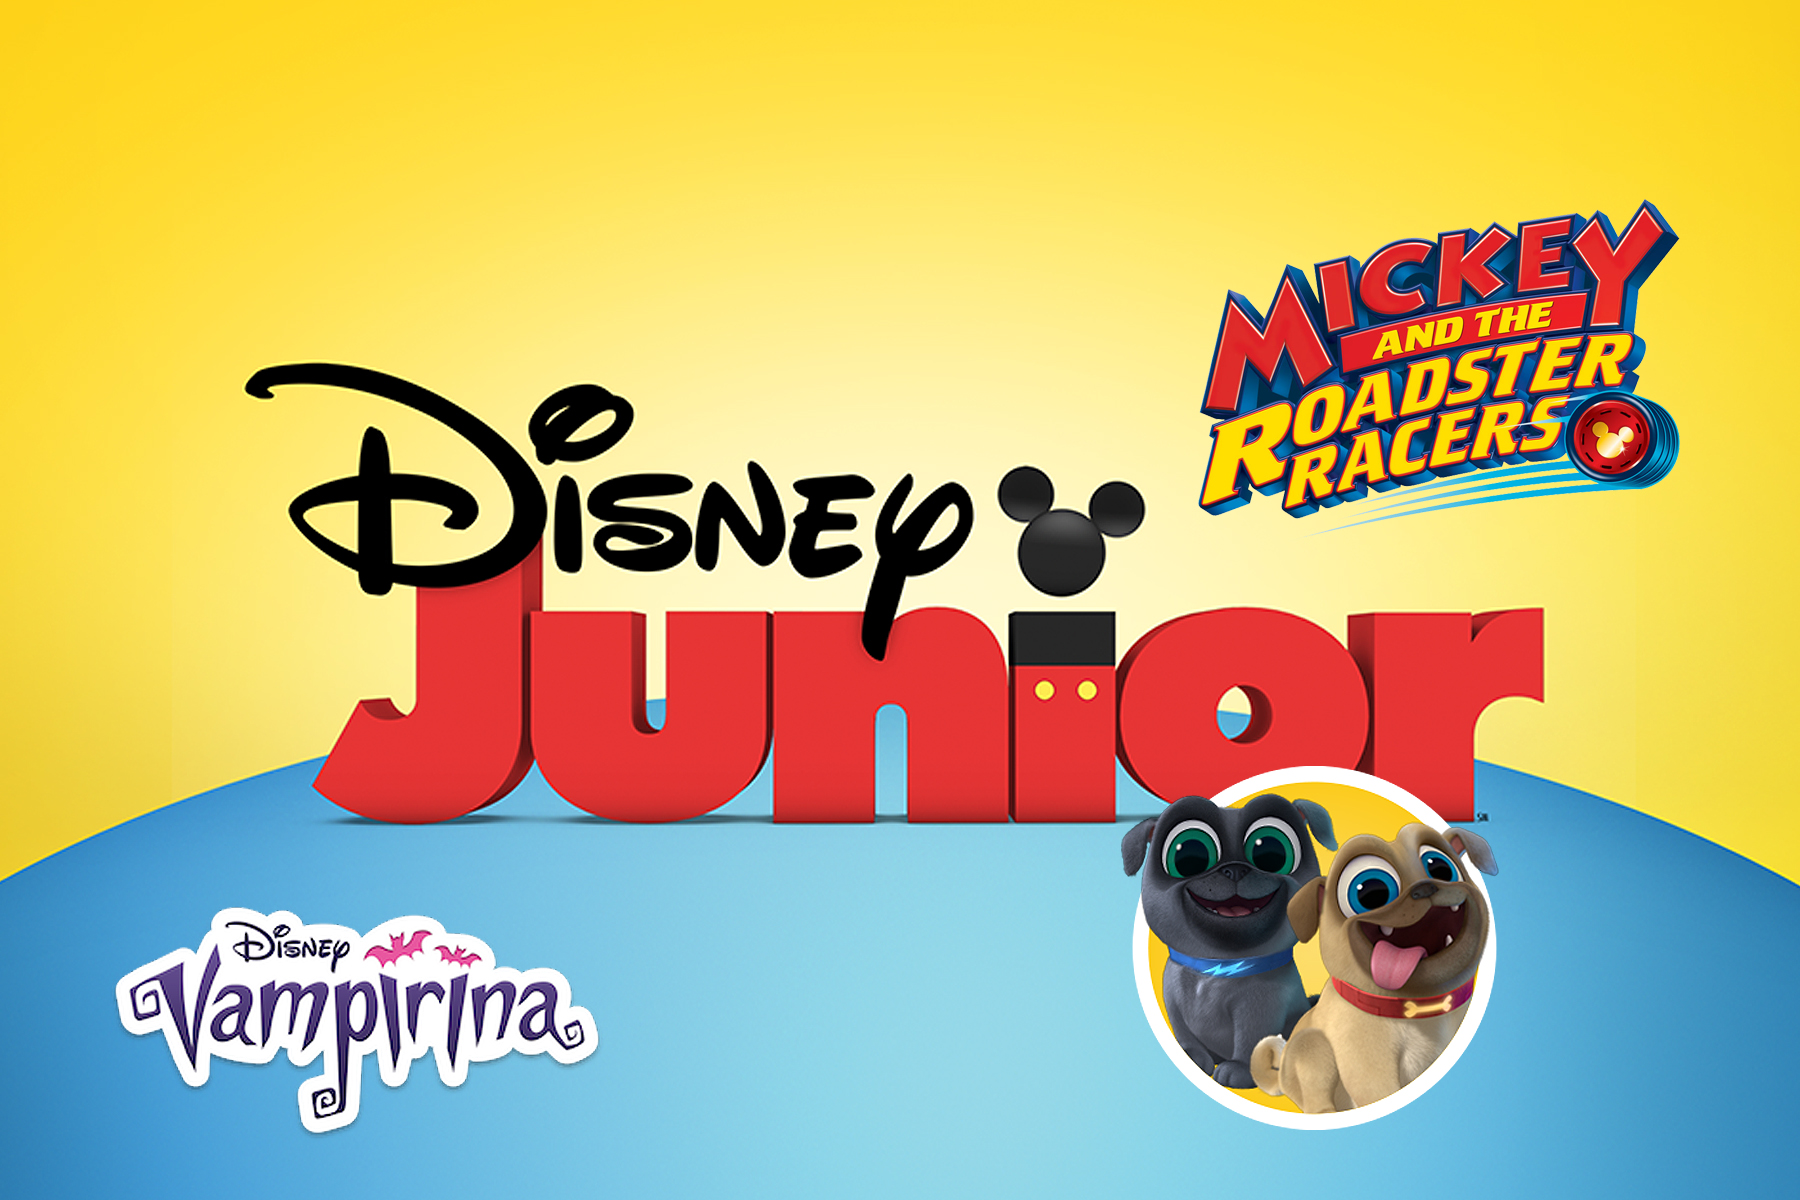 Simon And Disney Junior Collaborate On 'Disney Junior Play Dates' To Take Place At Simon Malls Across The Country